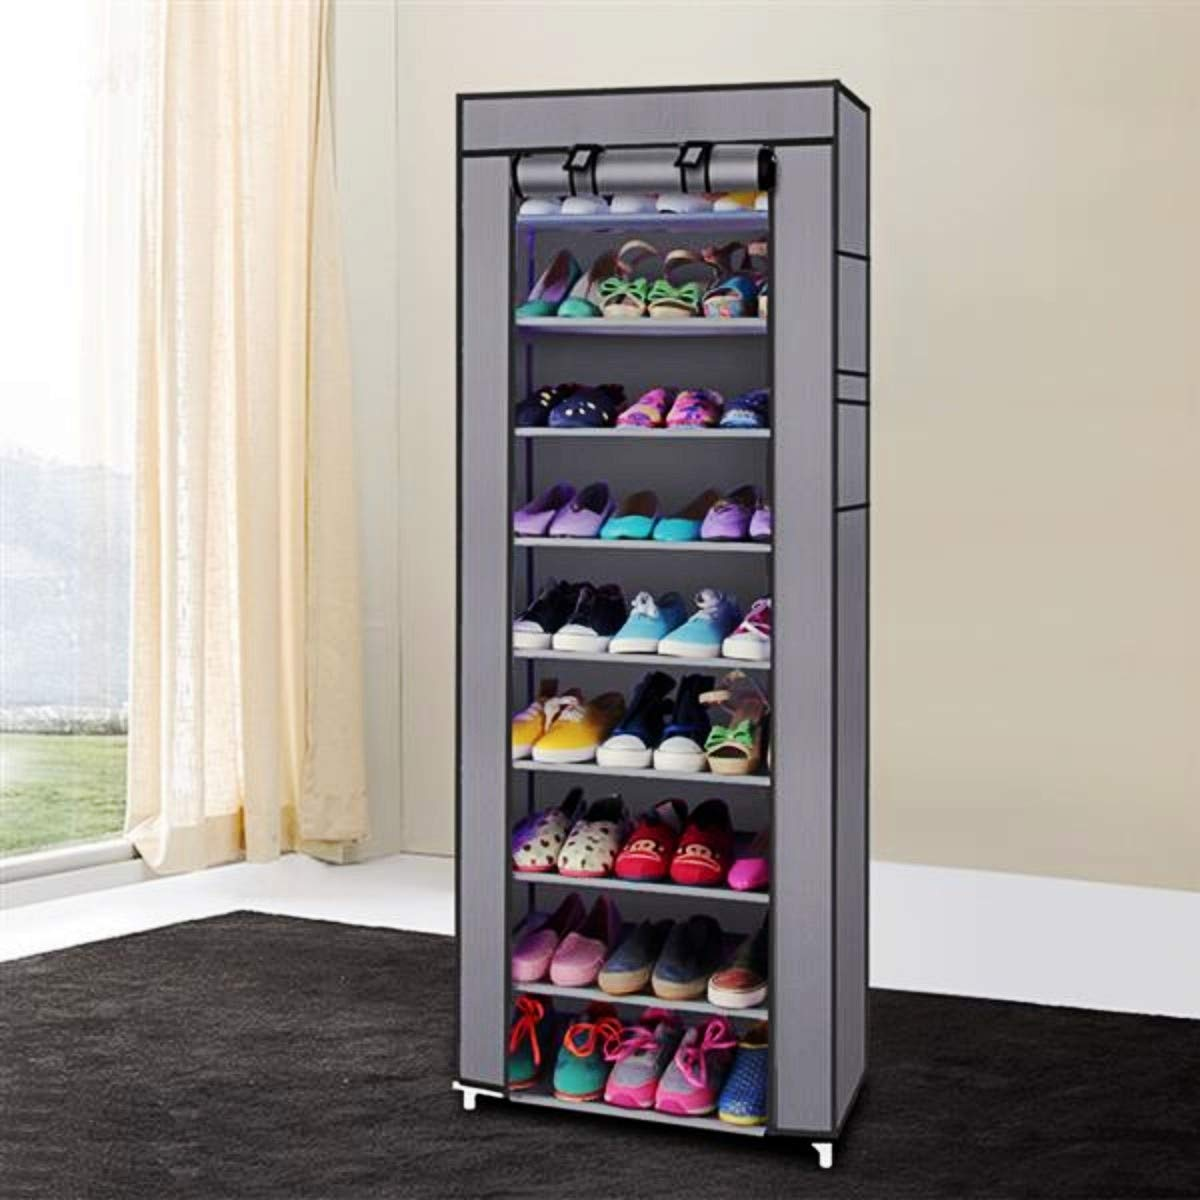 SoSo-BanTian1989 10 Tiers Shoe Cabinet with Dustproof Cover